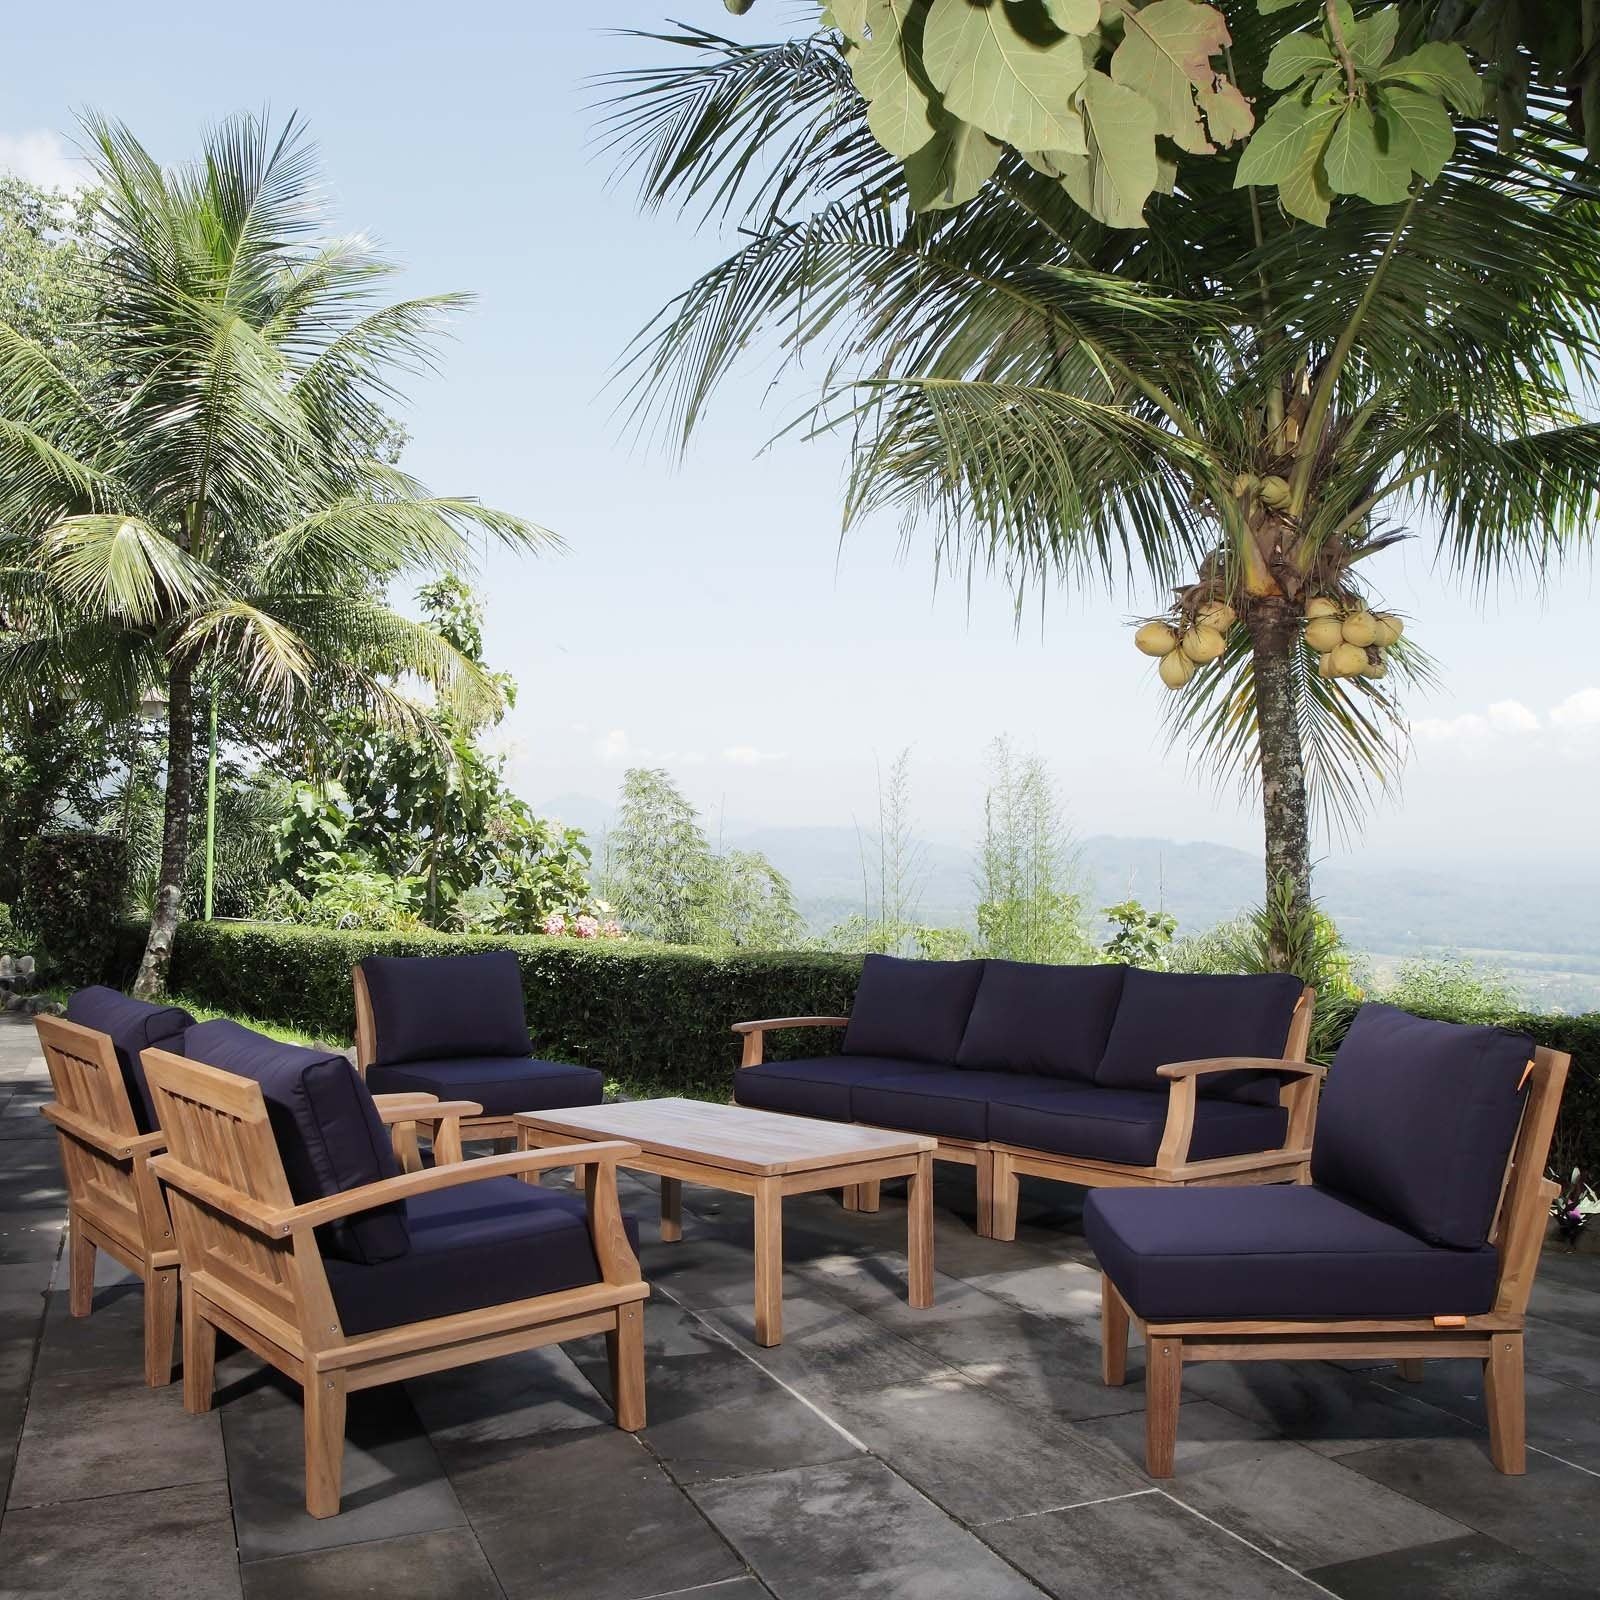 Marina 8 Piece Outdoor Patio Teak Set - Natural Navy